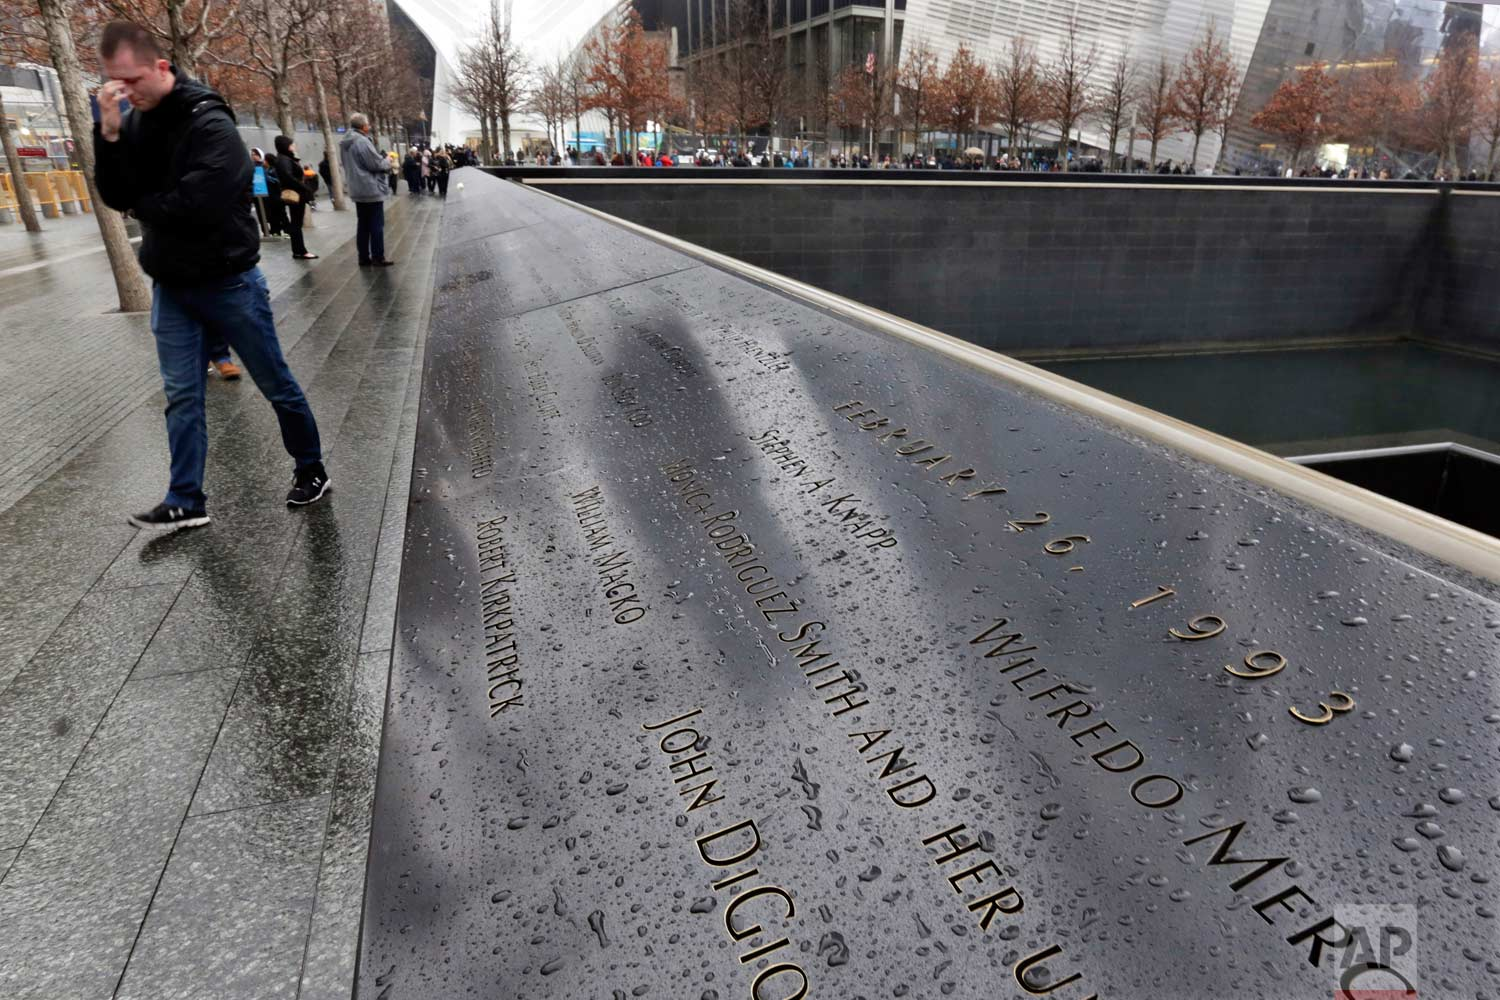 The names of the six people who died in the Feb. 26, 1993 truck bomb attack at the World Trade Center are inscribed in the bronze border of the north reflecting pool of the National September 11 Memorial, in New York, Friday, Feb. 23, 2018. It was a terror attack that foreshadowed Sept. 11: the deadly World Trade Center bombing that happened 25 years ago Monday. (AP Photo/Richard Drew)